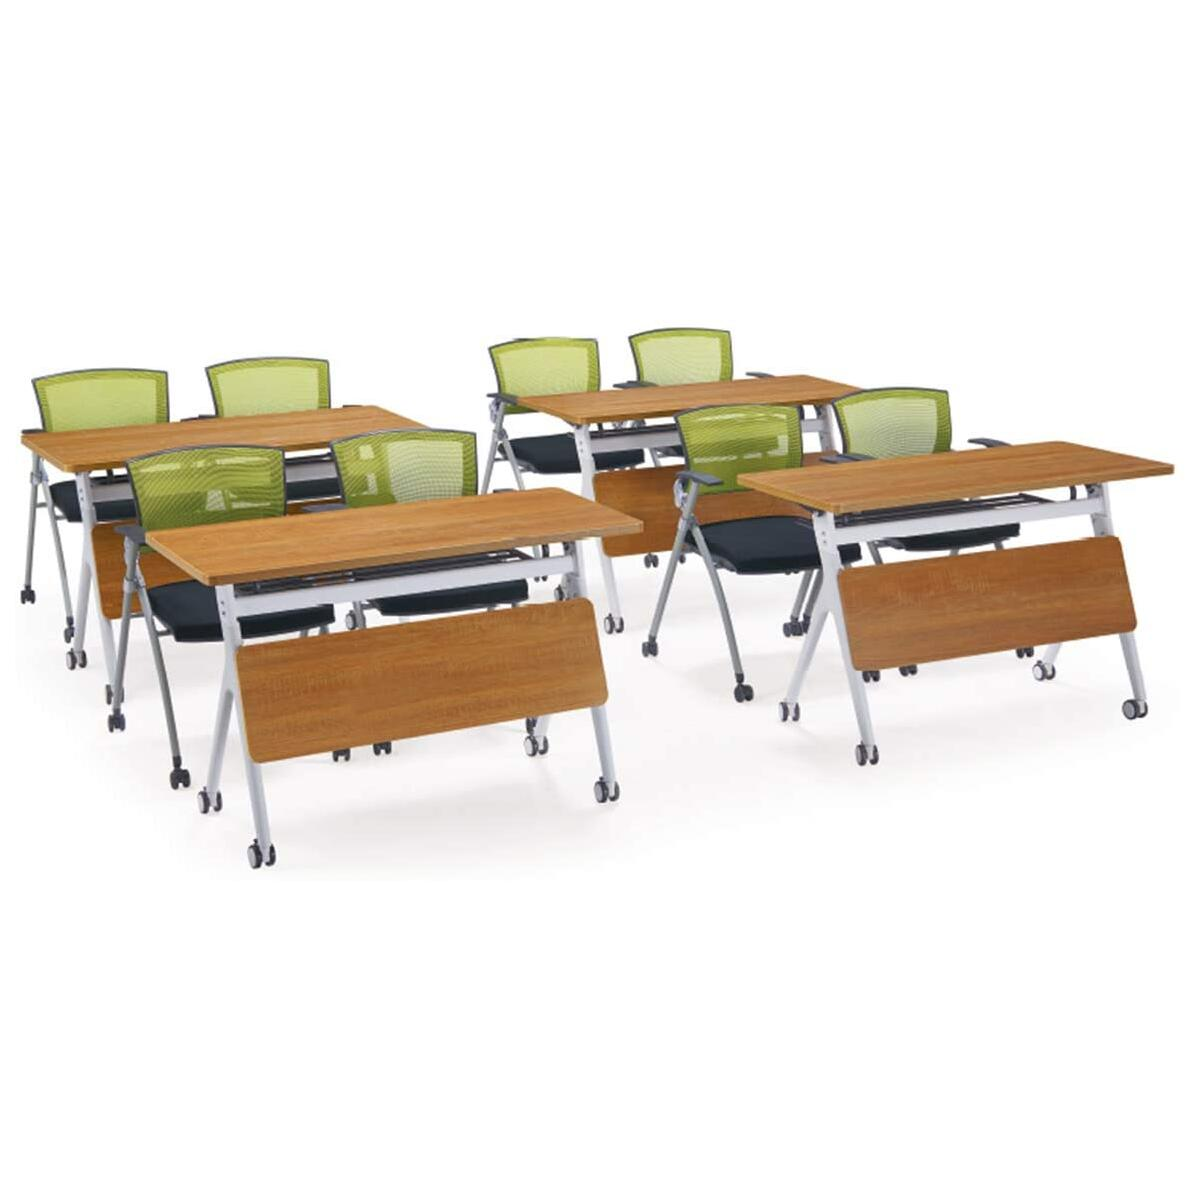 IBAMA Office Foldable Desk 1.2M Heavy Duty Flipper Table with Casters for Home Work, Study, Conference Training